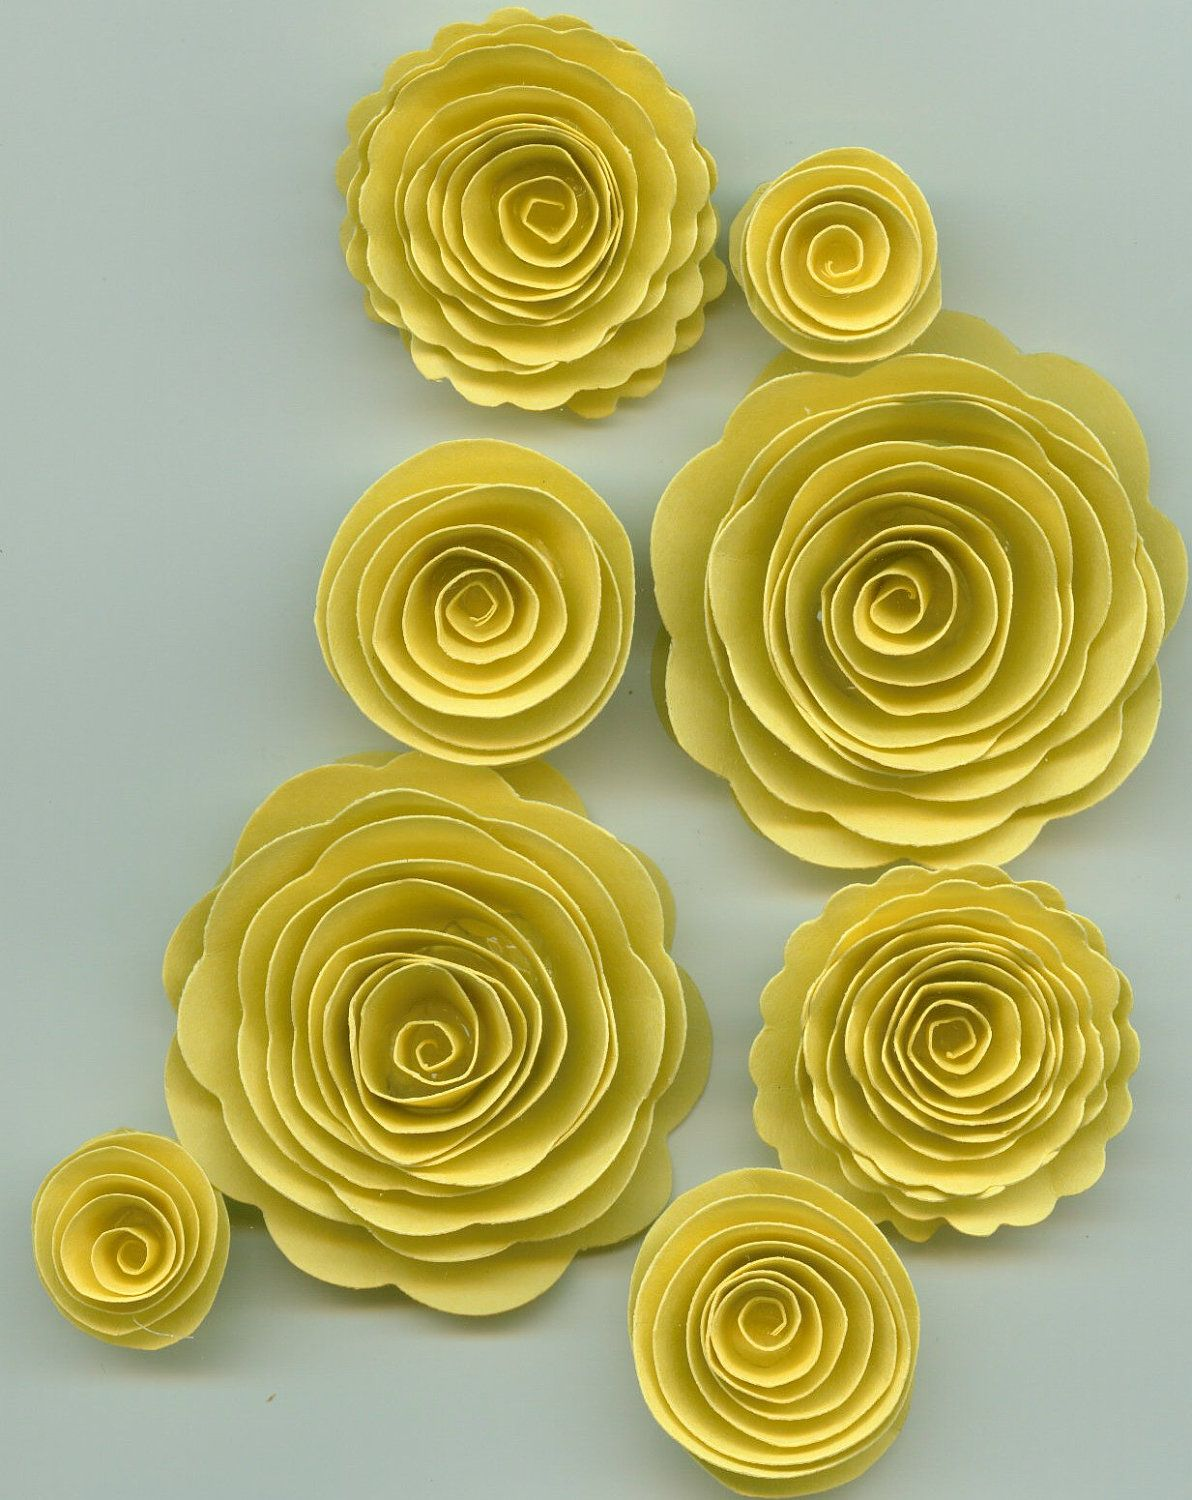 Pastel Yellow Rose Spiral Paper Flowers For Weddings Bouquets